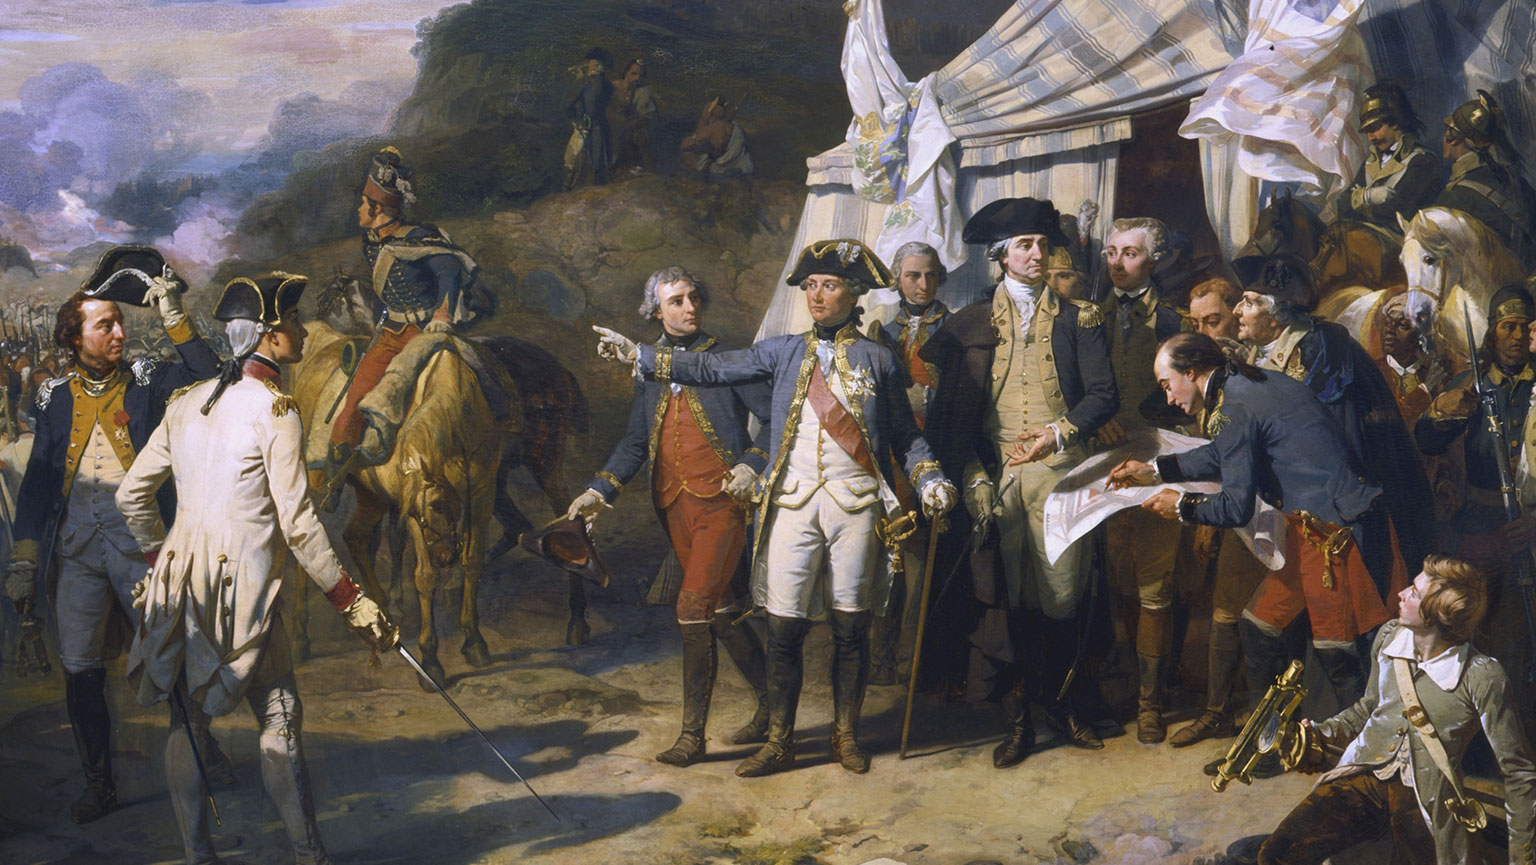 the life of general daniel morgan during the revolutionary wars in the 18th century